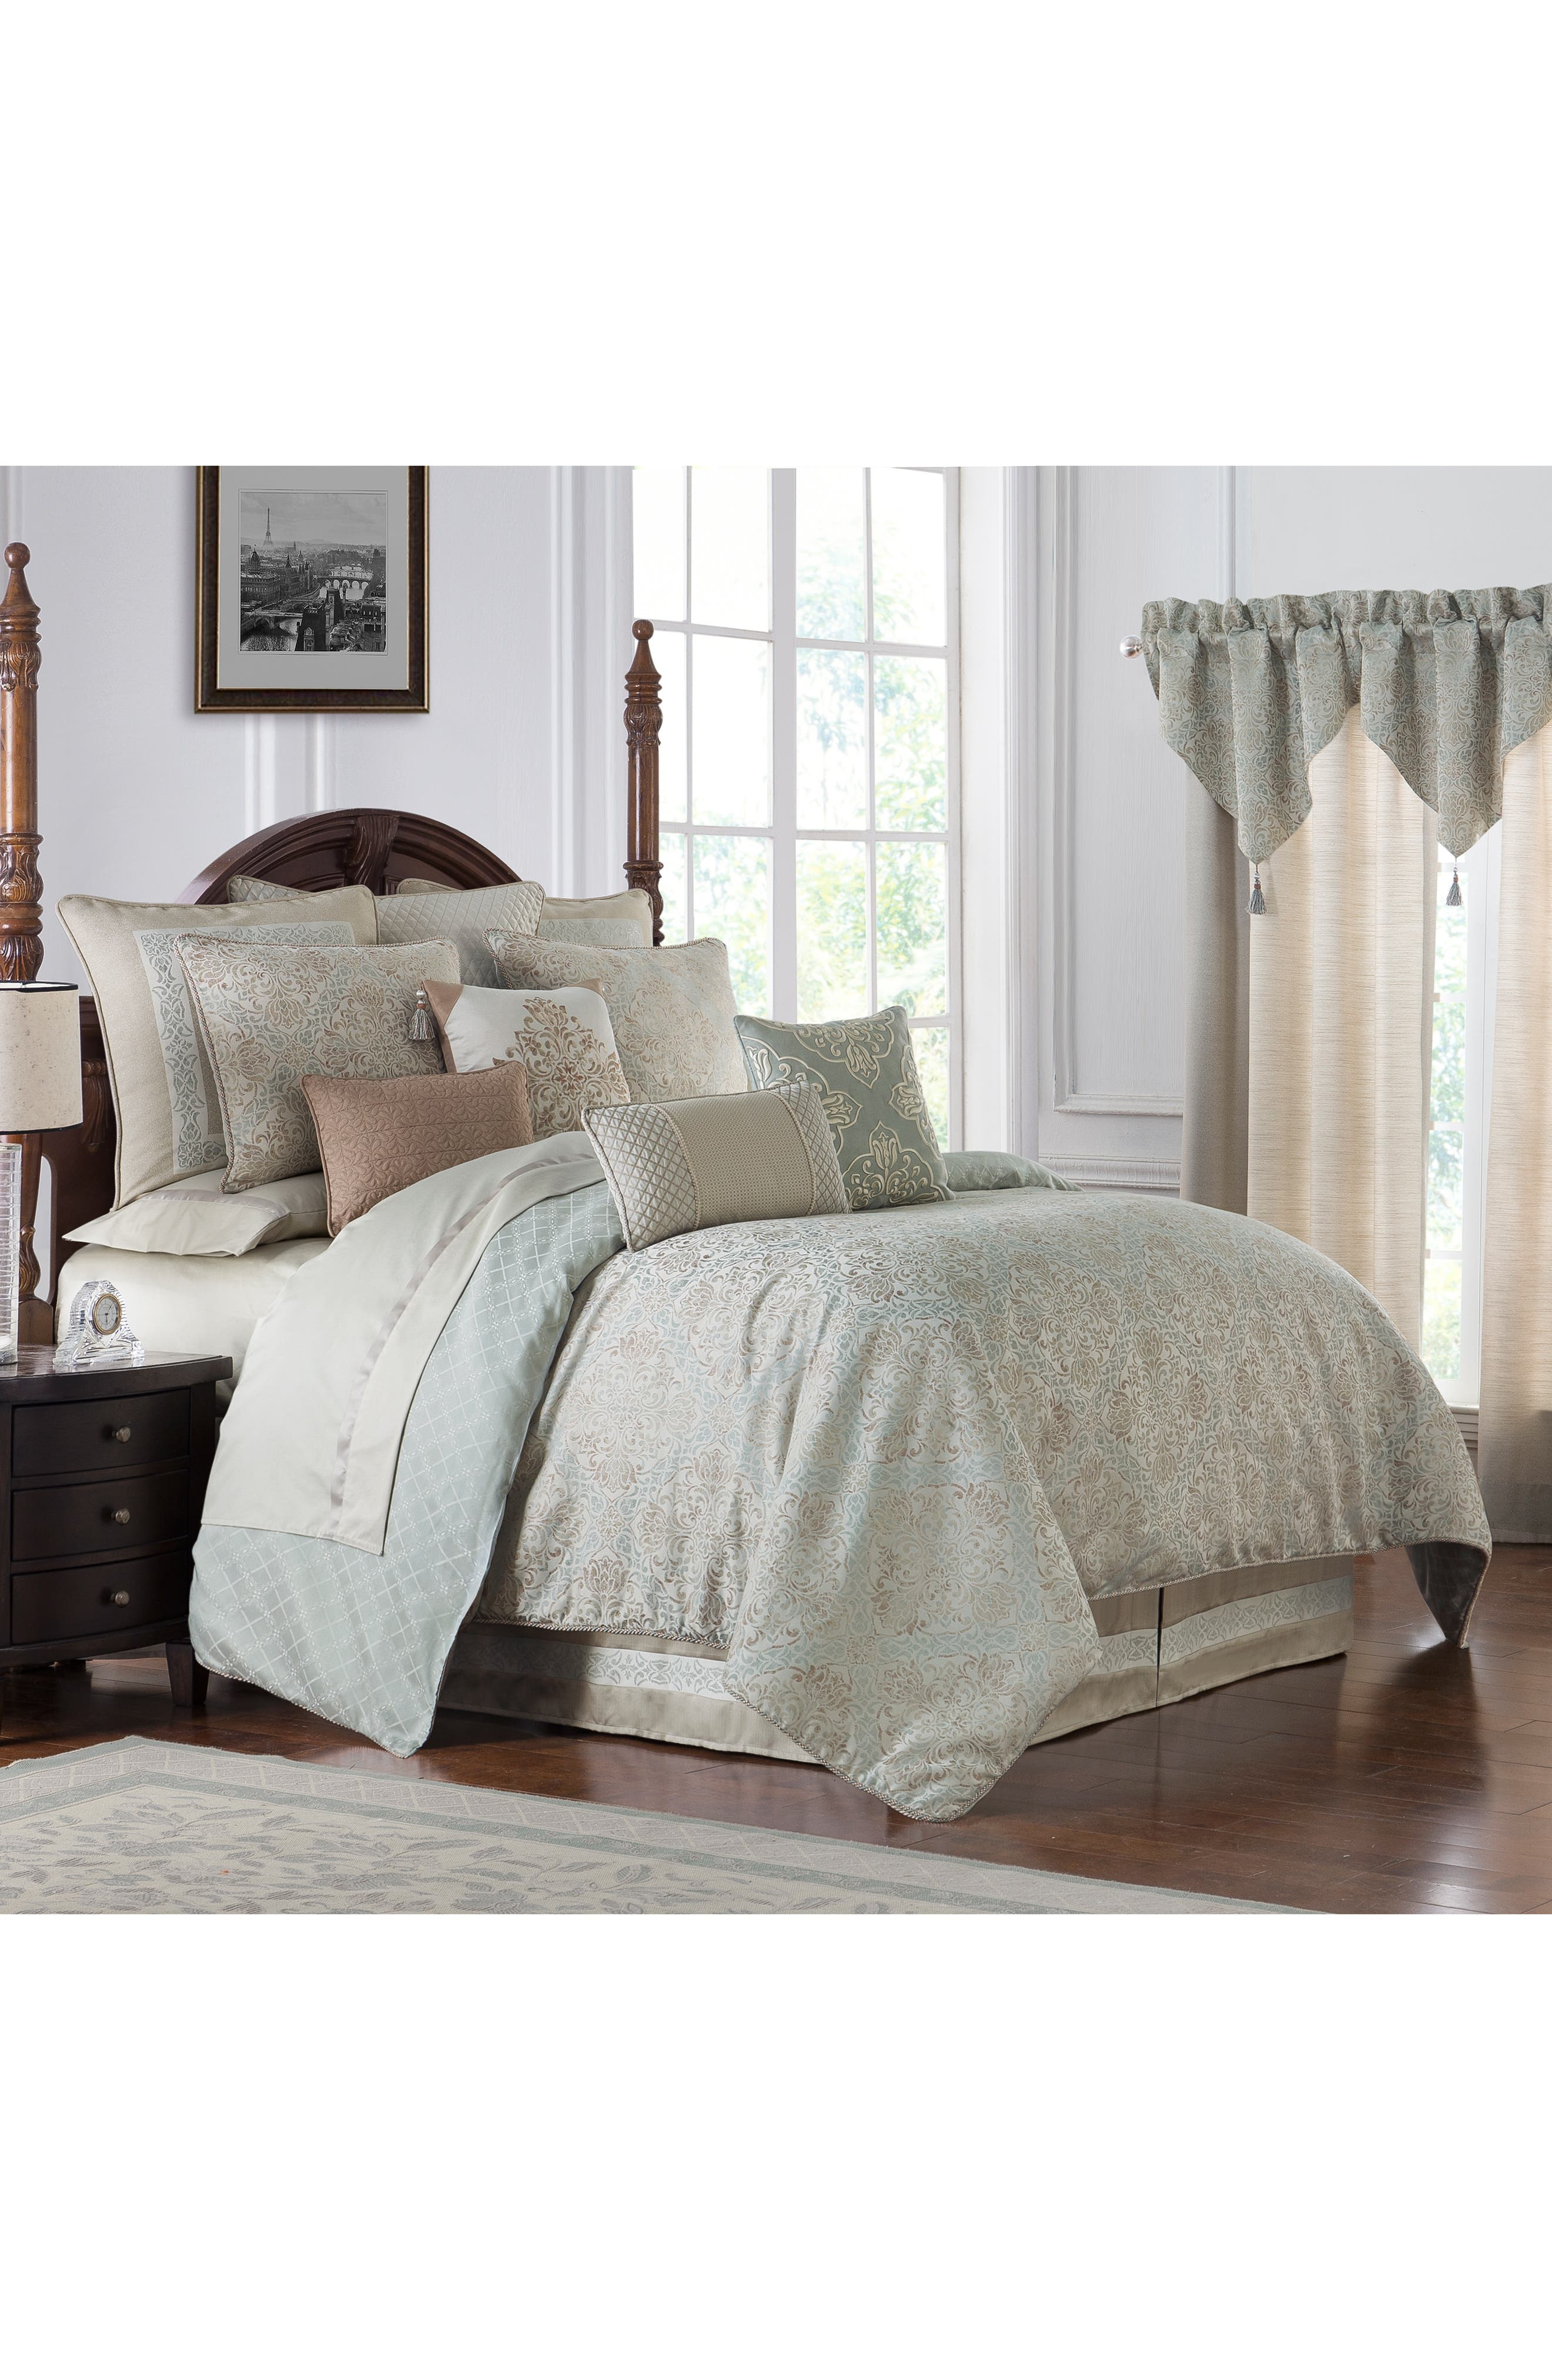 WATERFORD, Gwyneth Reversible Comforter, Sham & Bedskirt Set, Alternate thumbnail 8, color, PALE BLUE